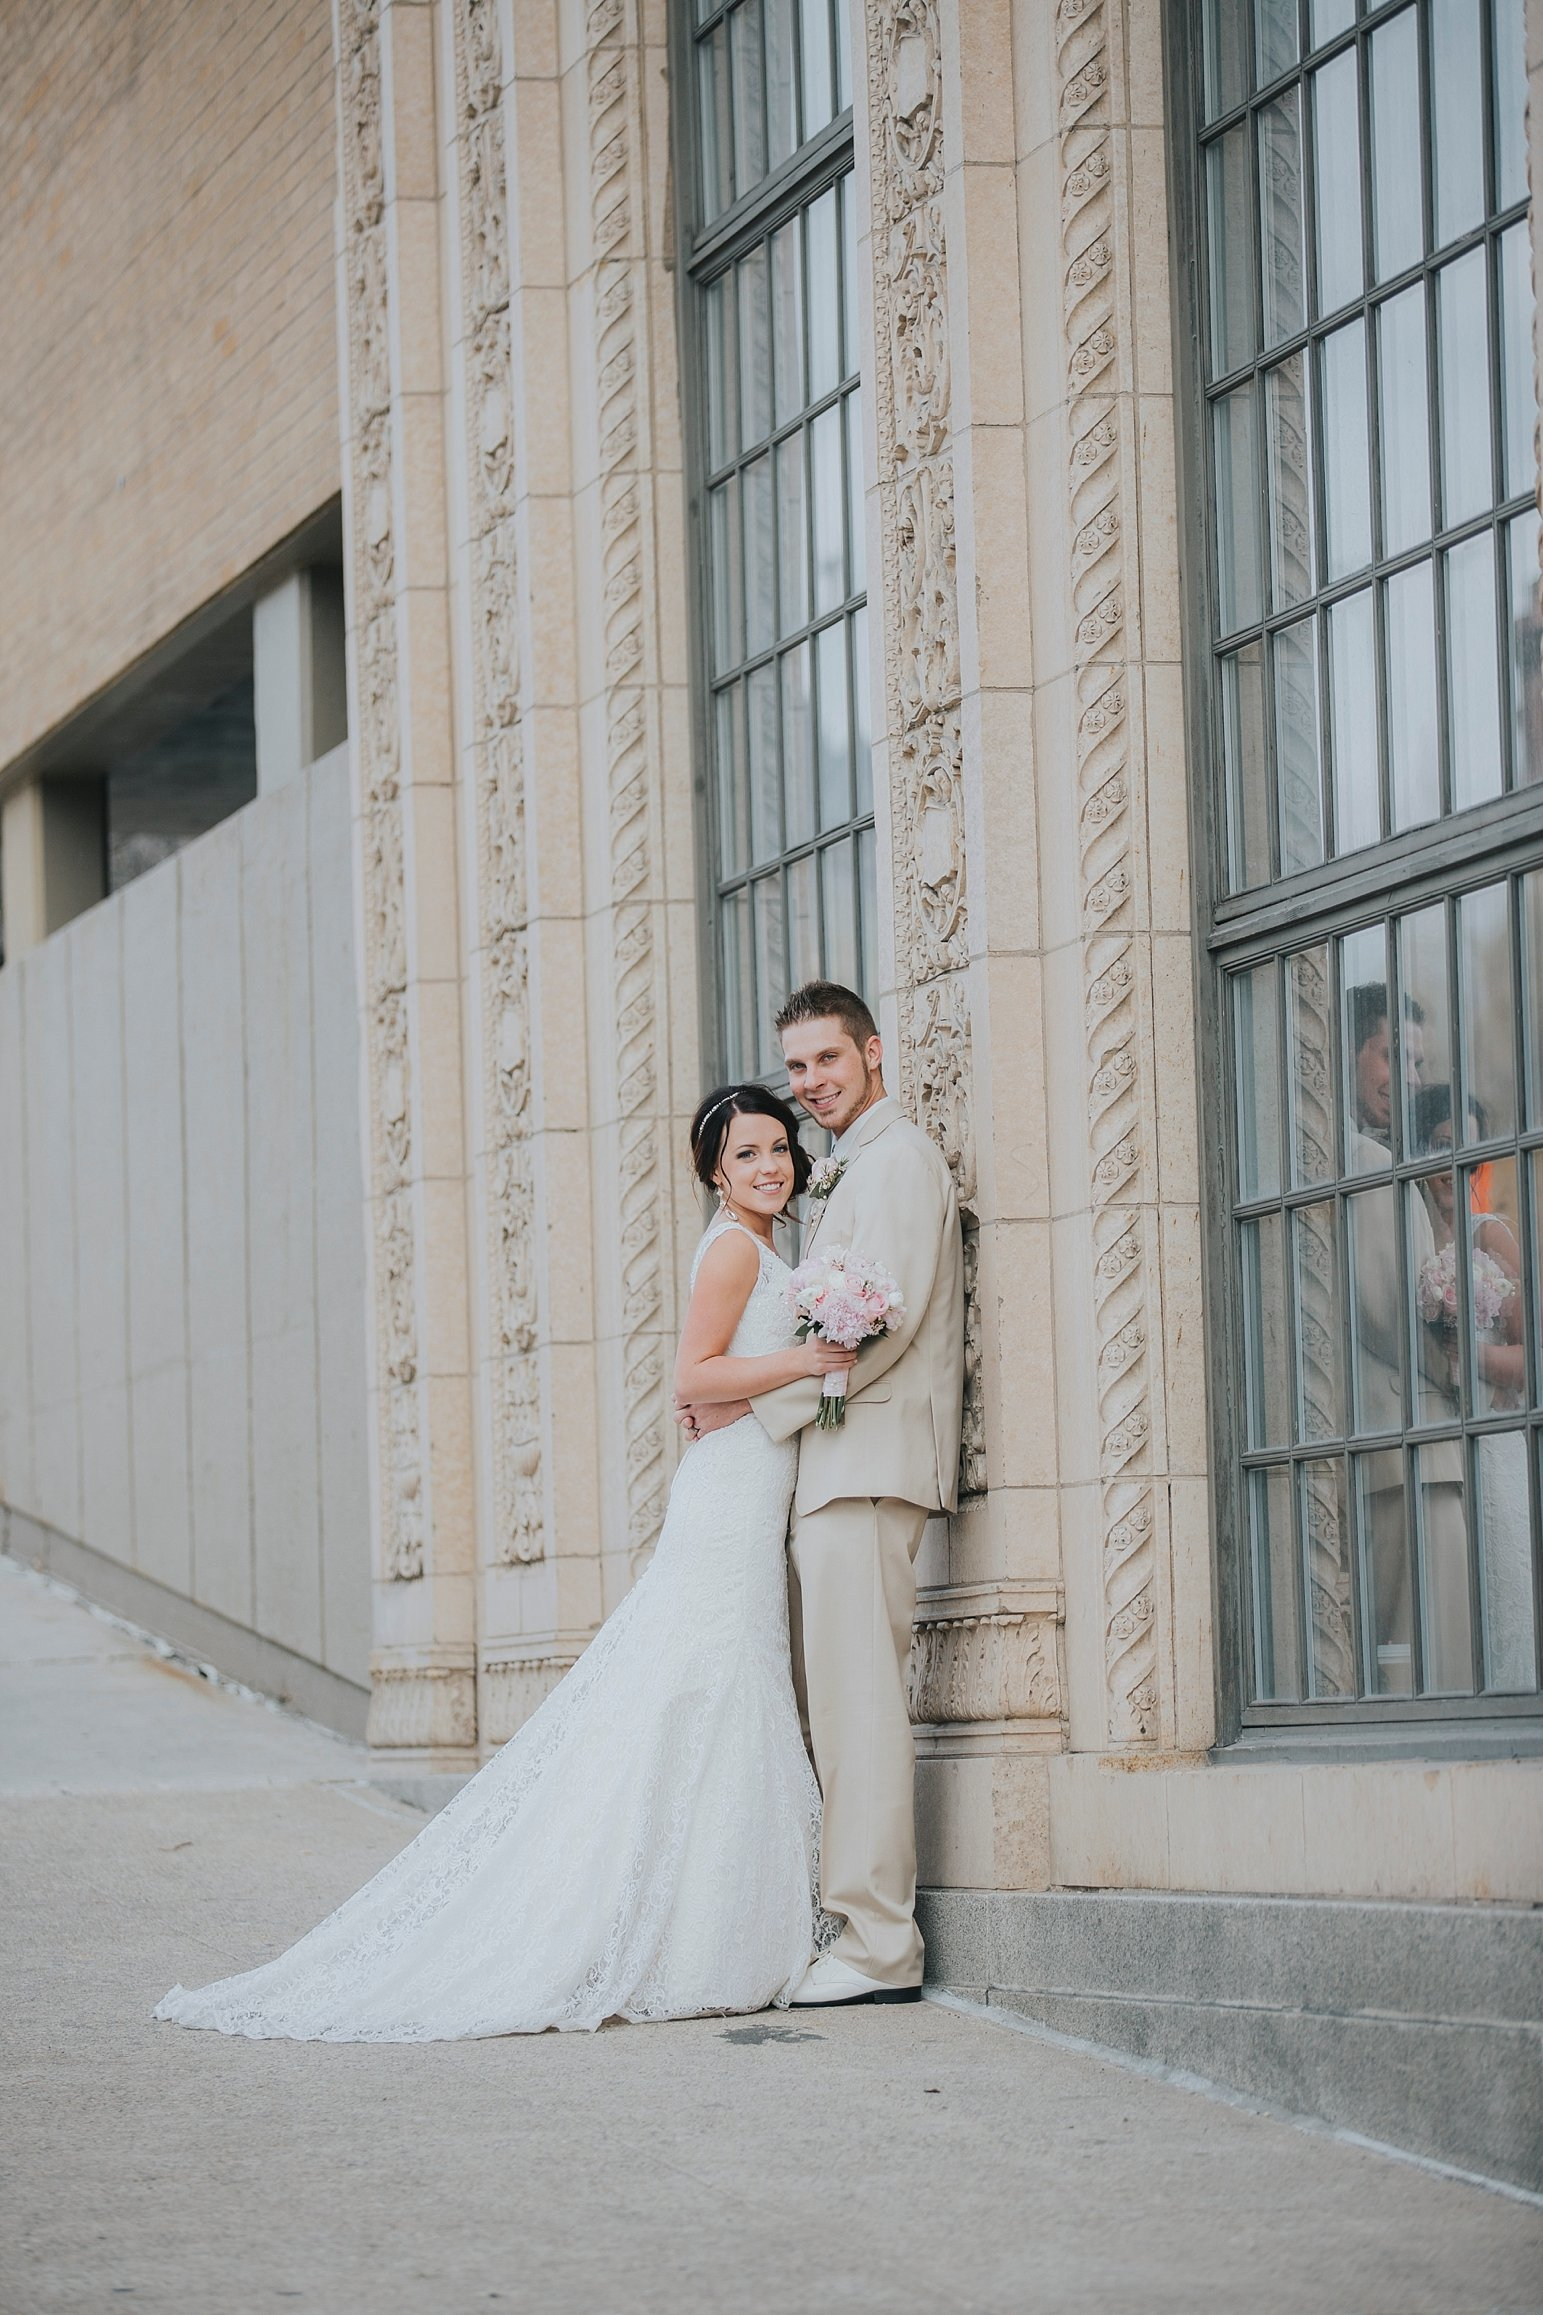 Salt Lake City Utah Wedding Portrait Photographer Wish Photography_0540